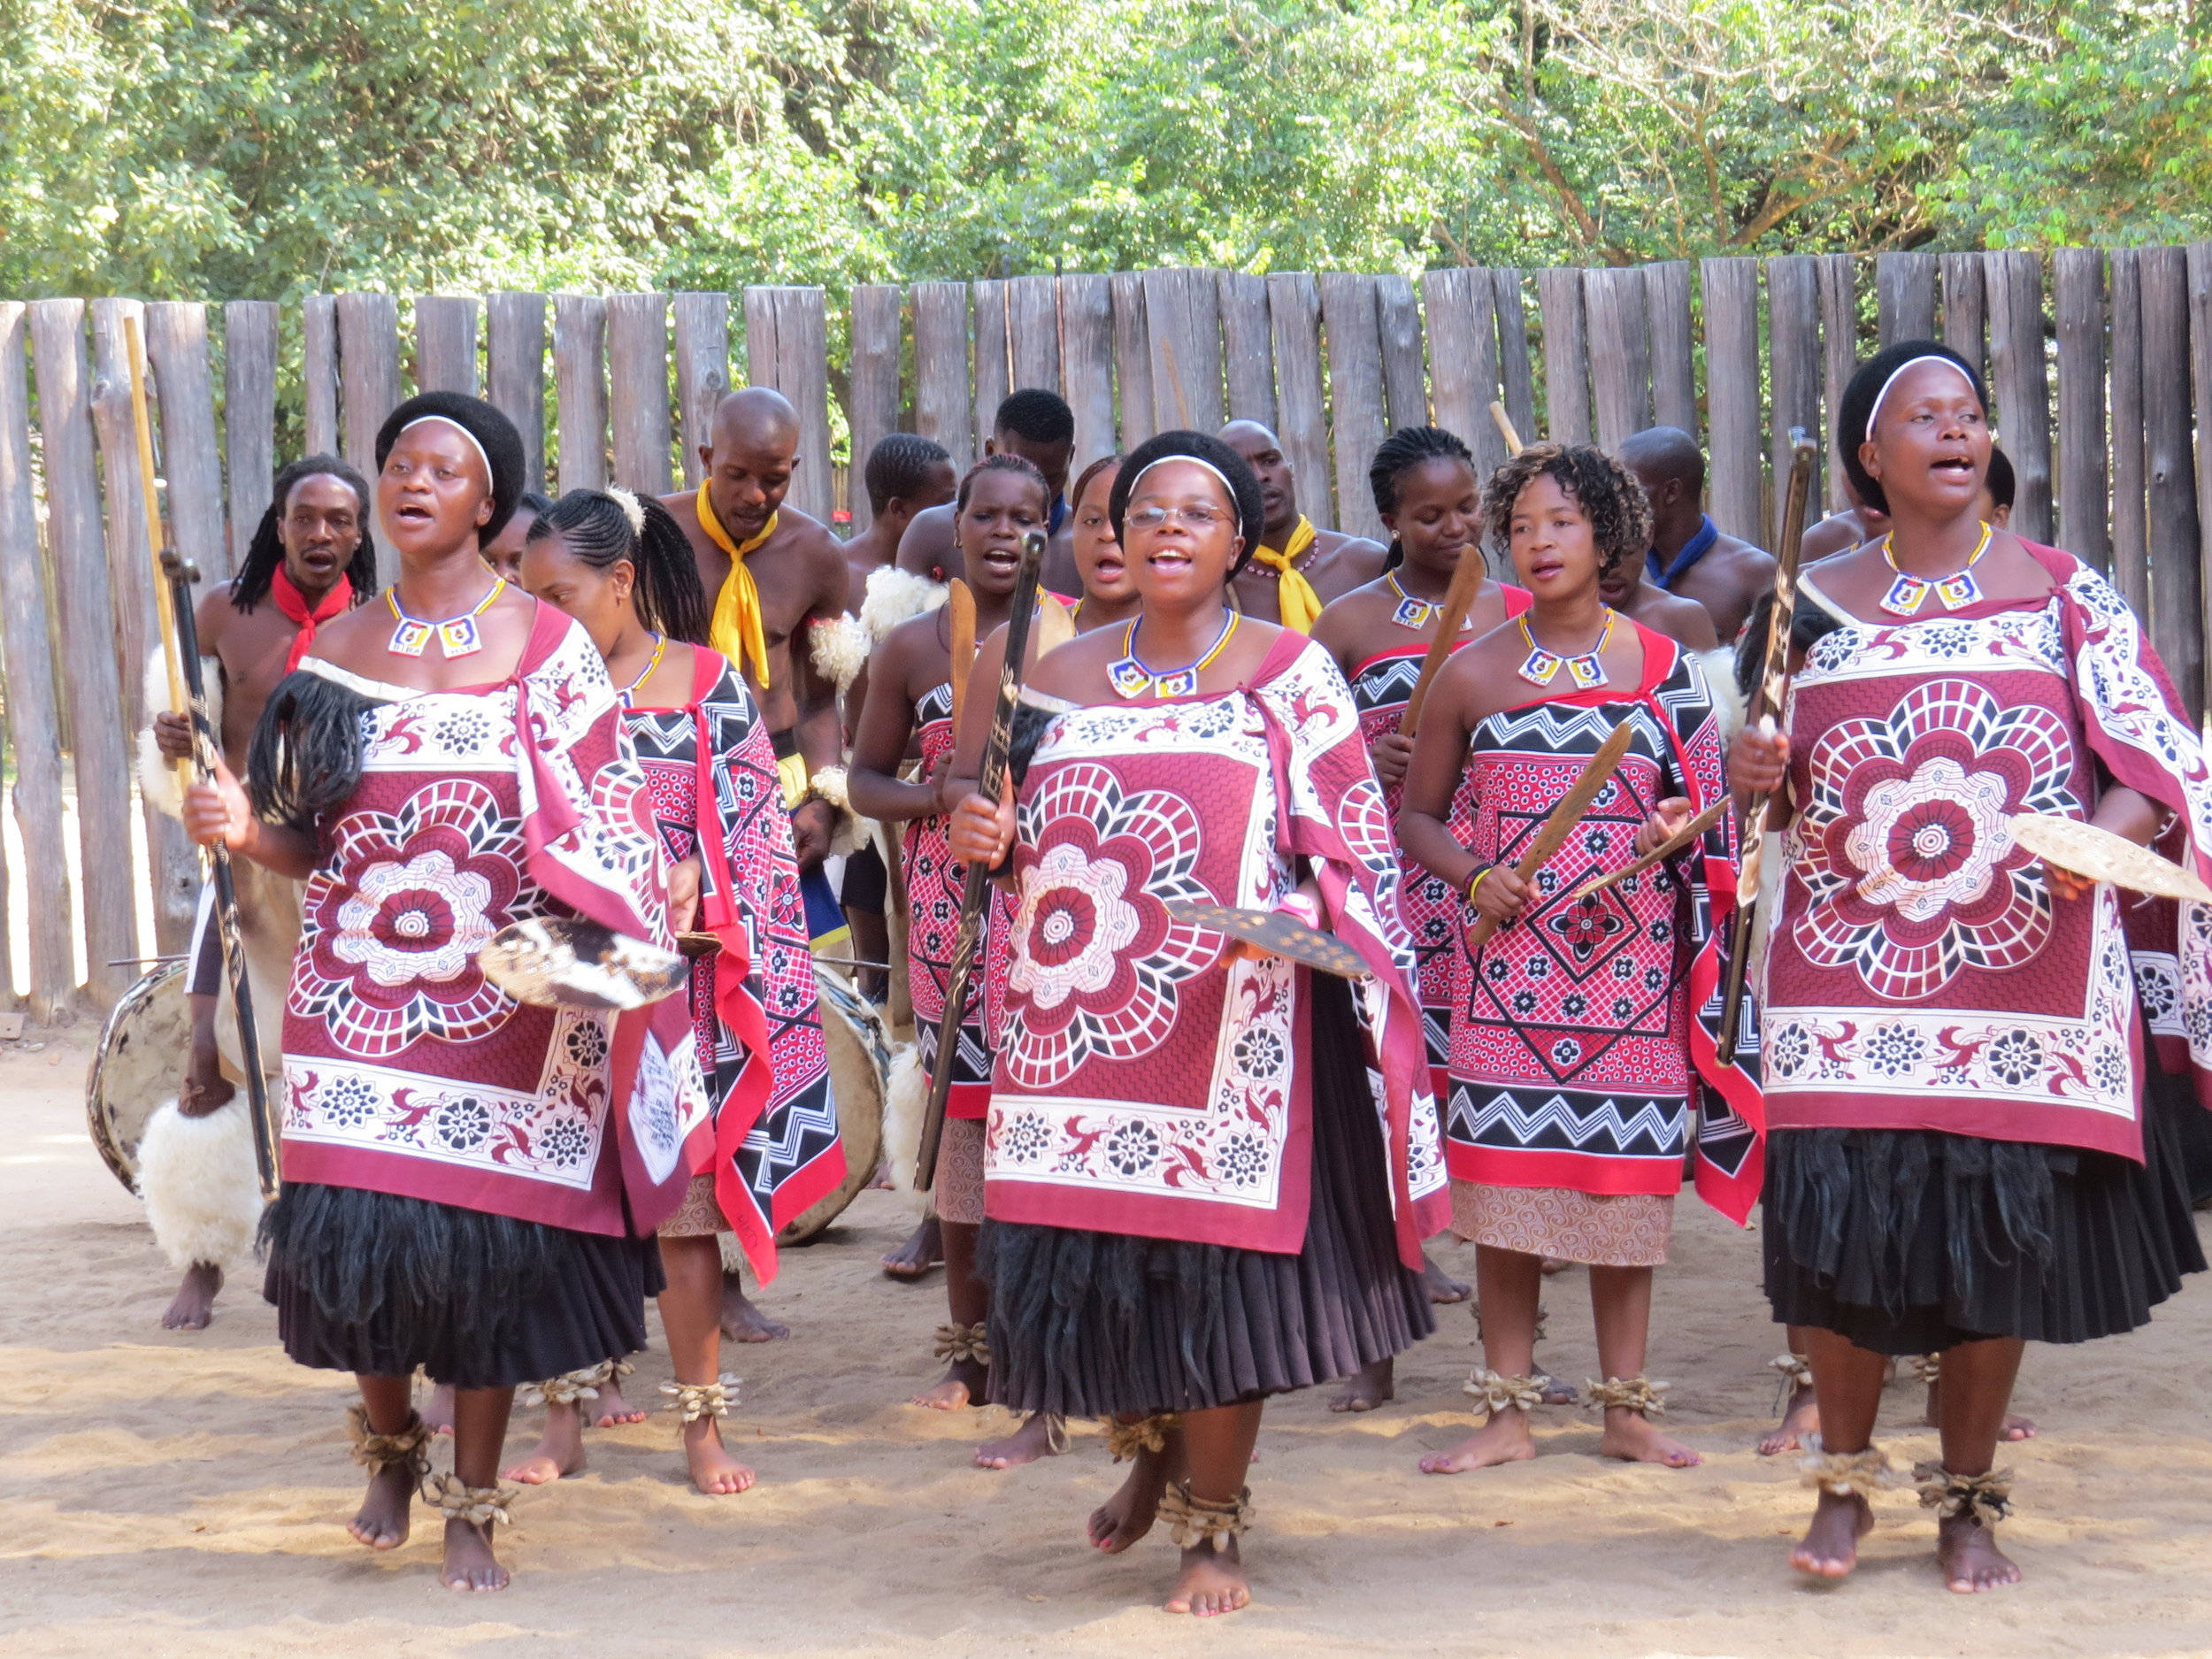 Women danced and sang